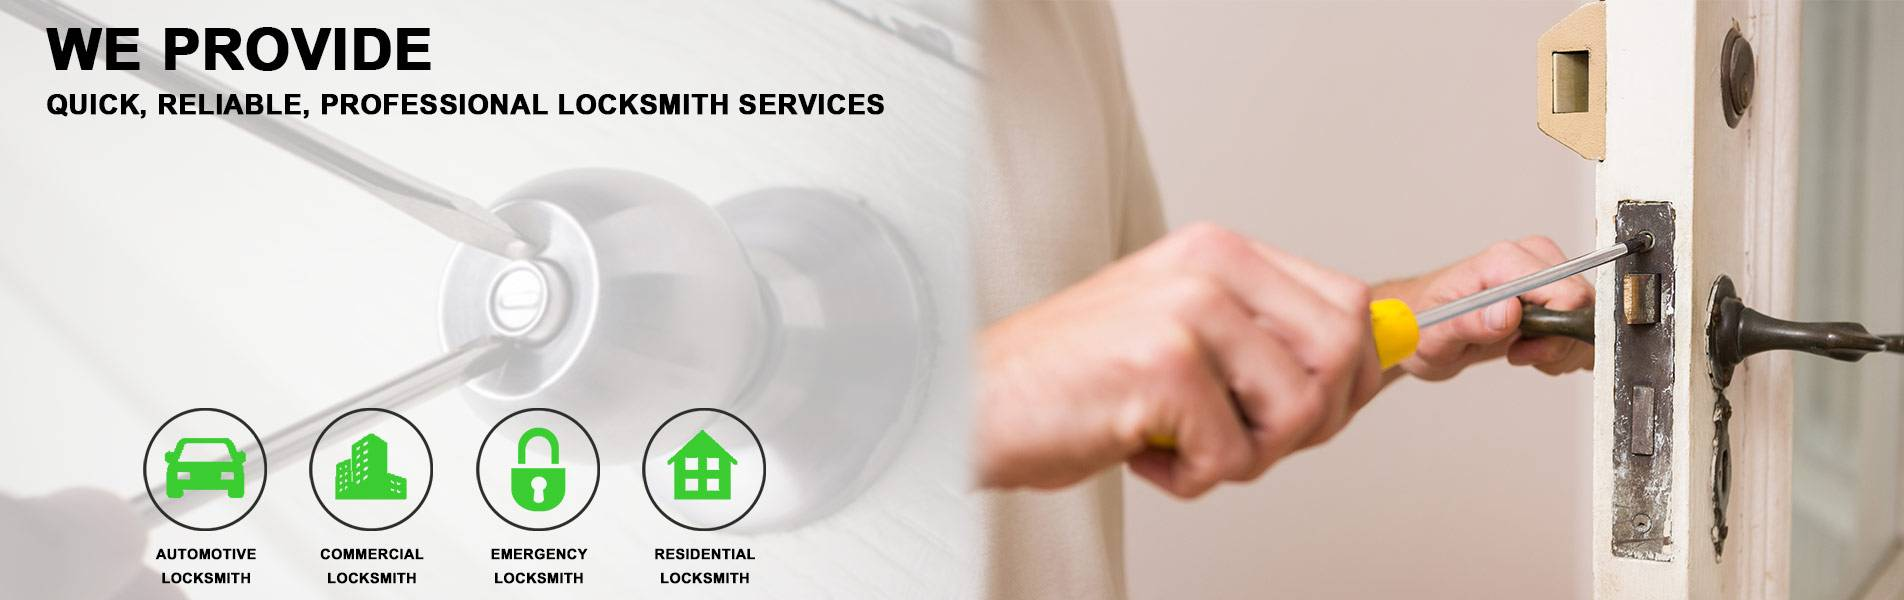 Expert Locksmith Services Tucson, AZ 520-226-3841